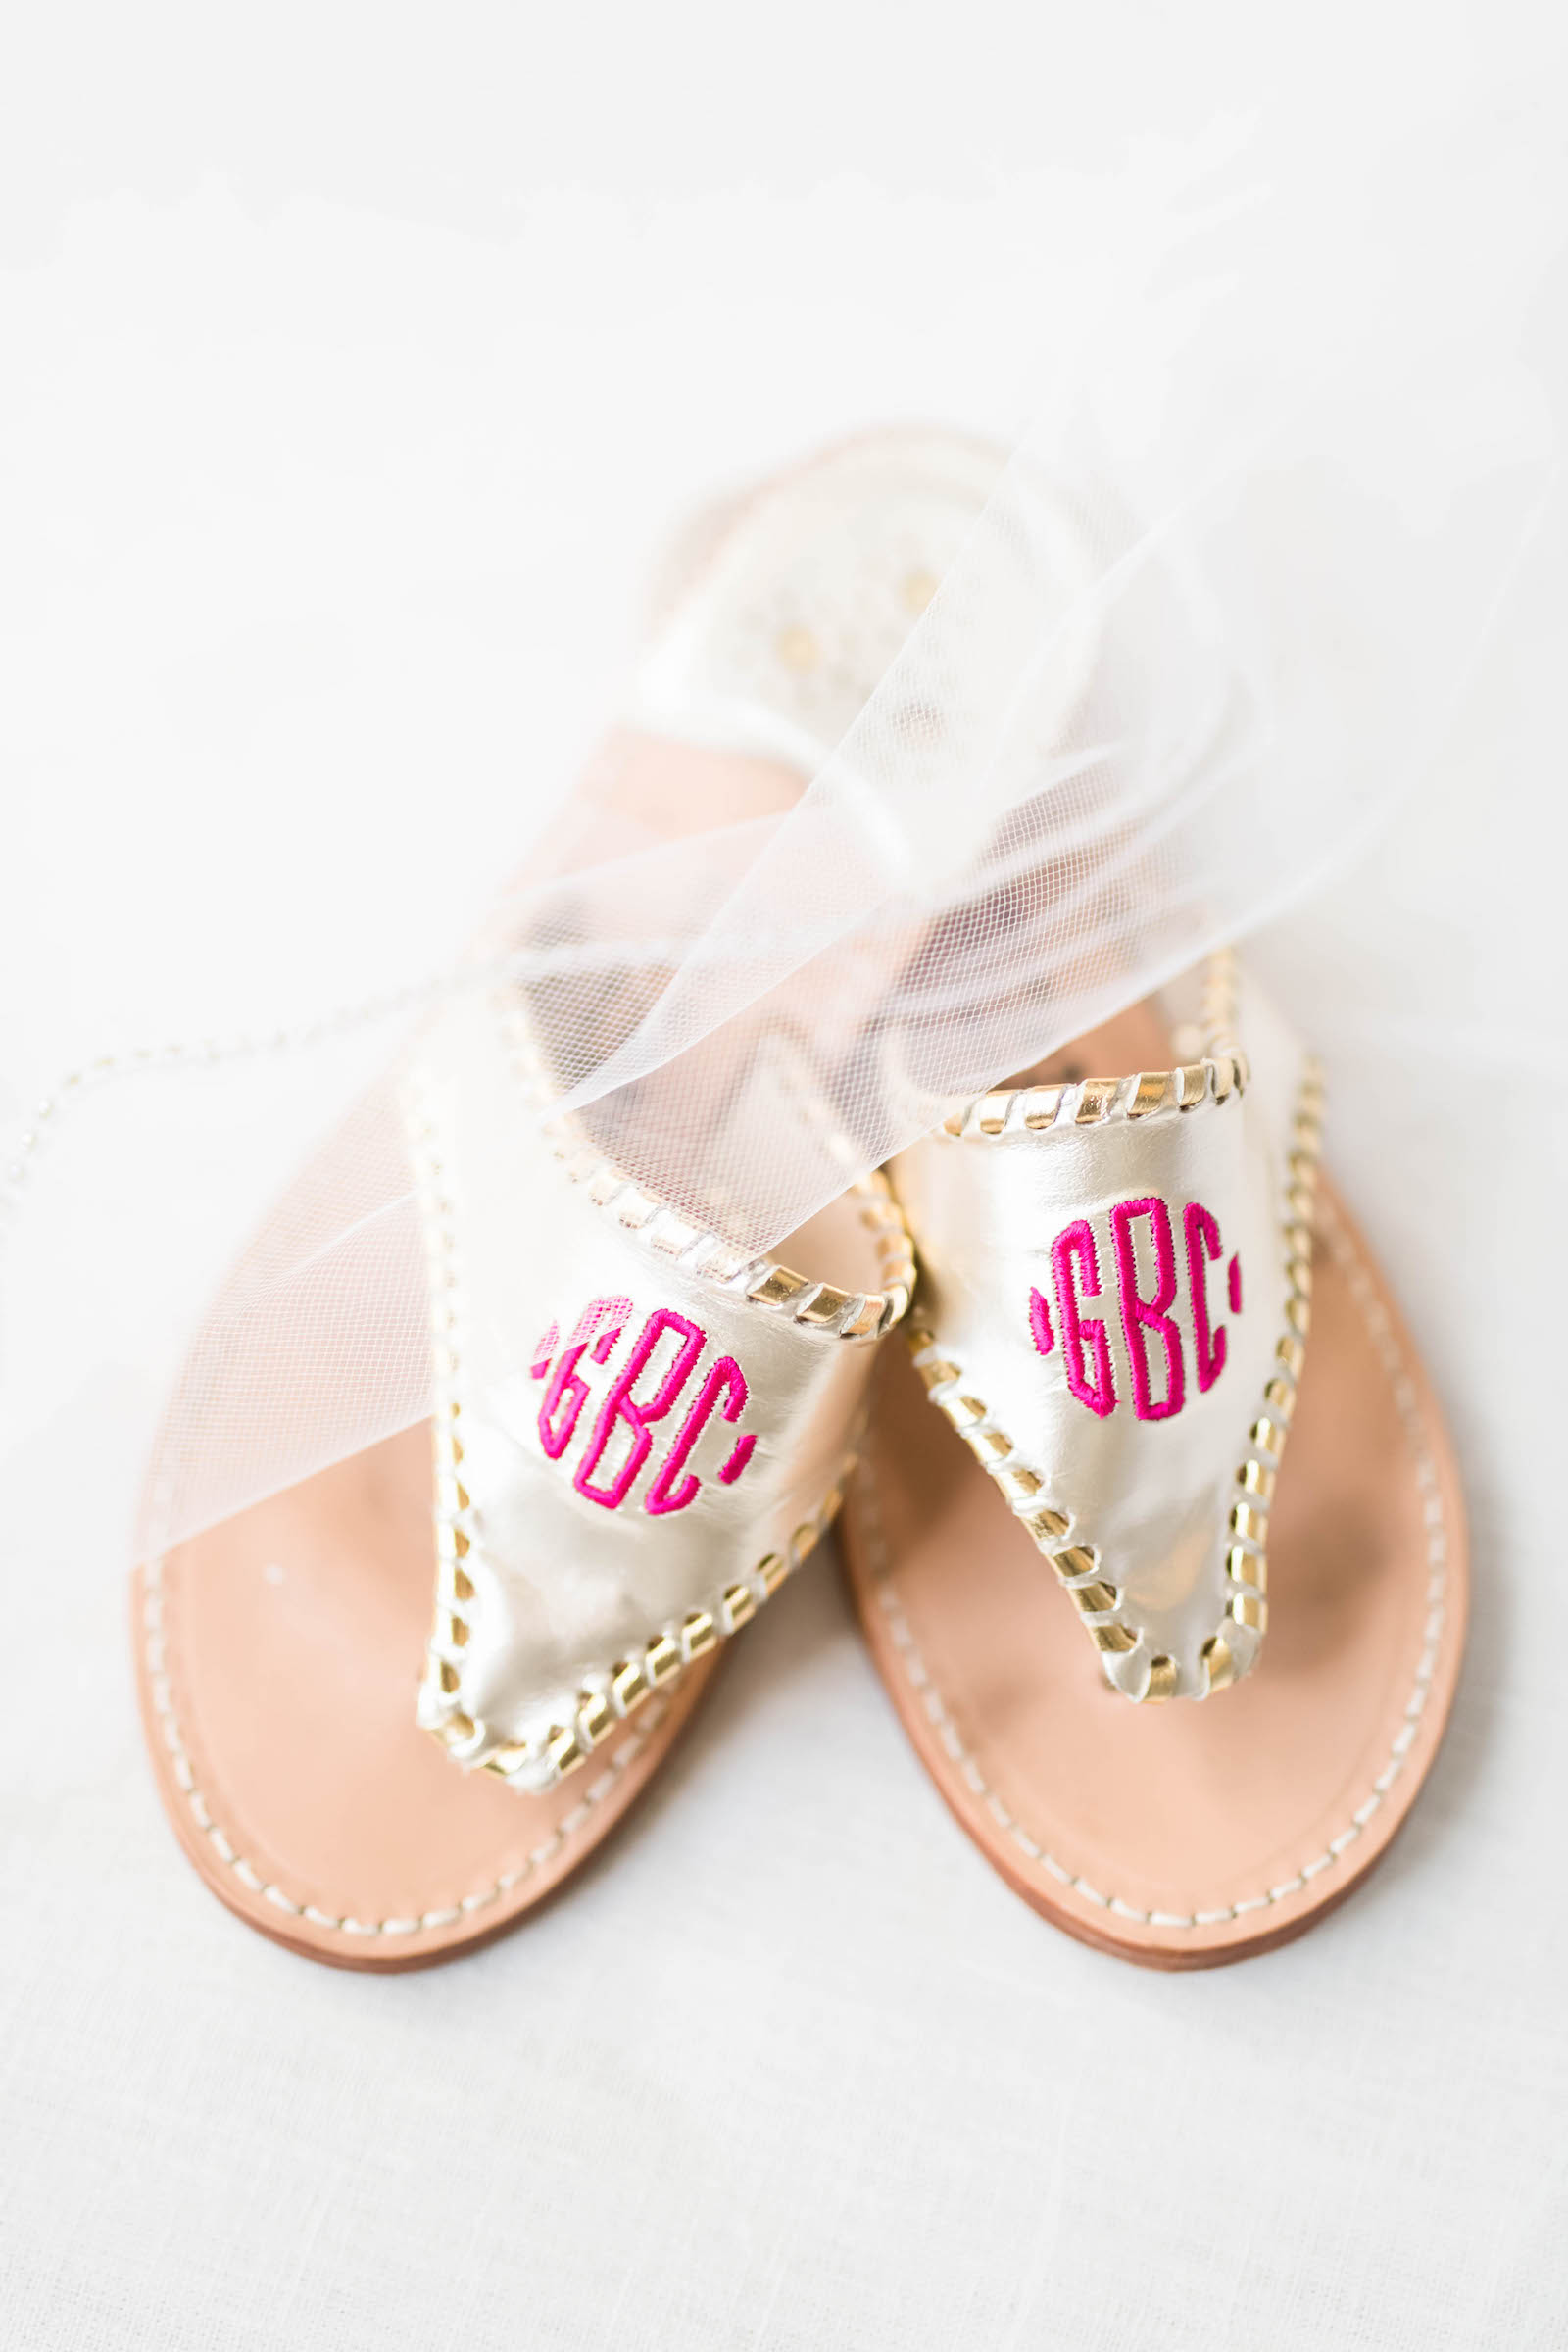 Gold Sandals with Pink Monogram Casual Wedding Shoes